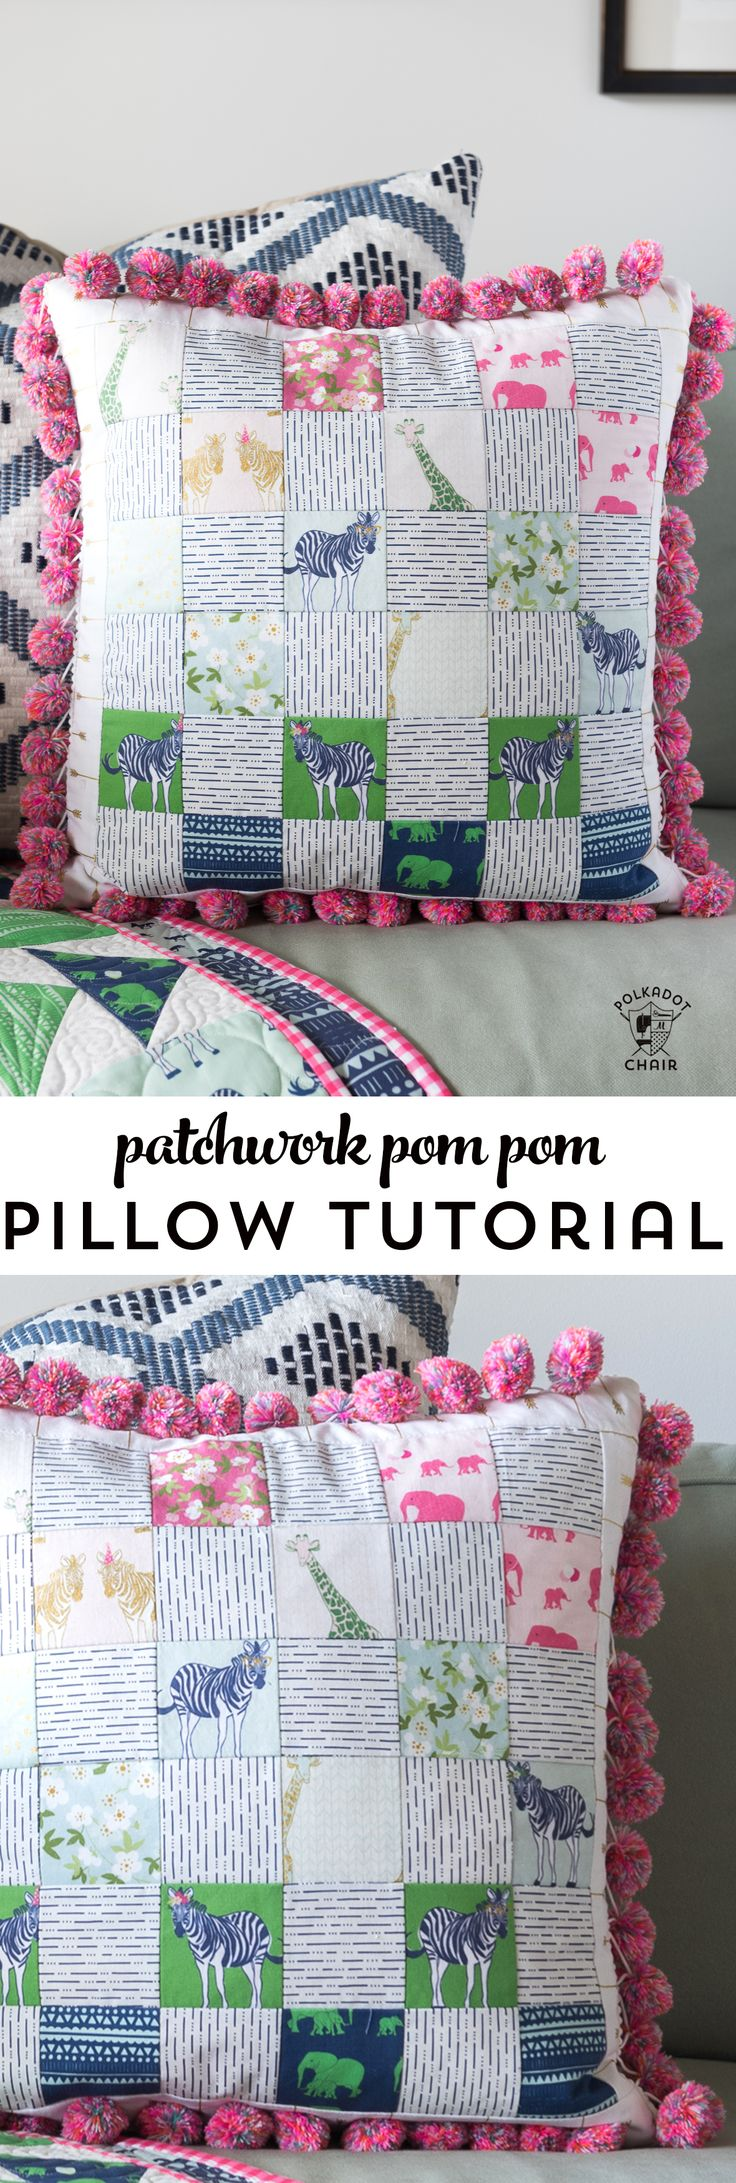 Free sewing pattern for a pom pom patchwork pillow. Uses a fun cheater way to & 25+ unique Patchwork pillow ideas on Pinterest   Quilt pillow ... pillowsntoast.com